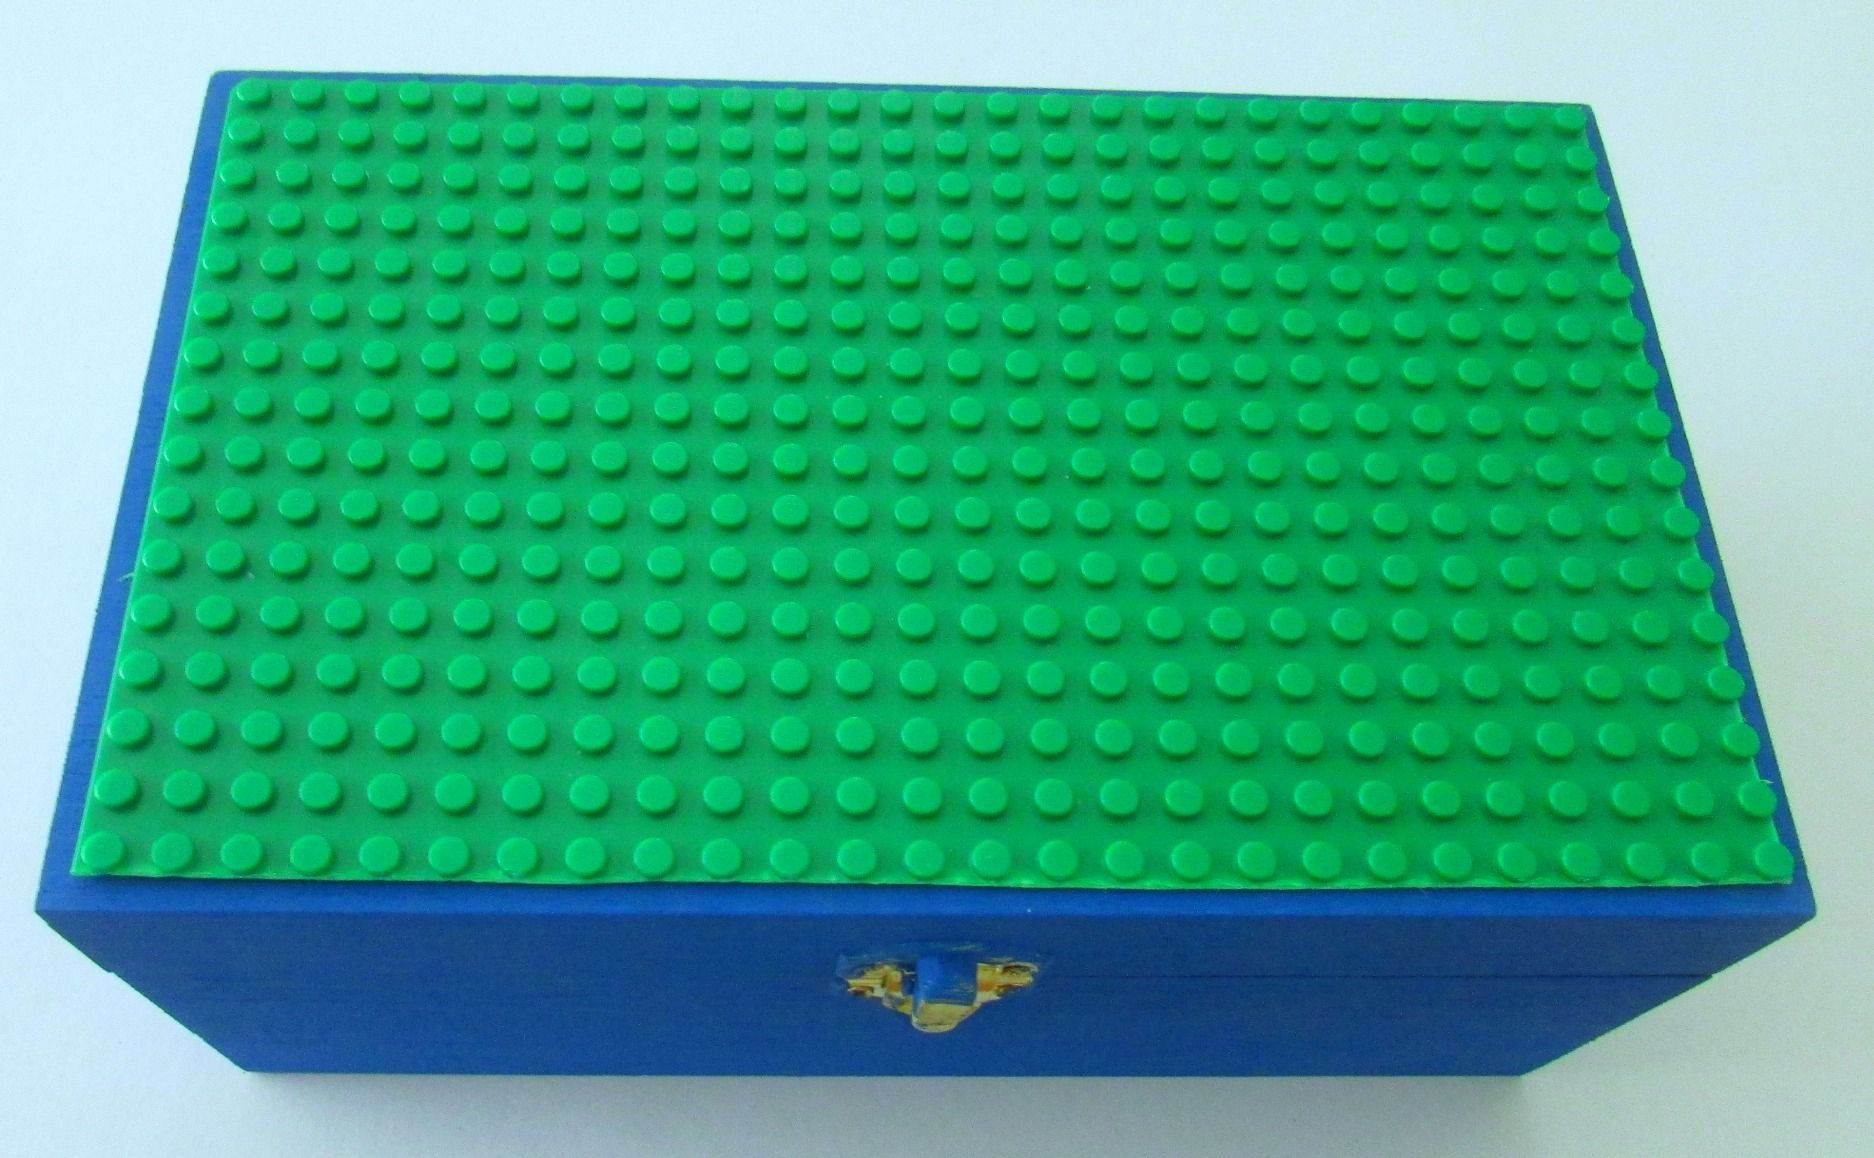 DIY Lego Travel Box-This simple box is fast & easy to create and it's perfect for road trips or a special gift. Fun to make with a kid, scout troop, awana, or MOPS! sunshineandhurricanes.com So great for the Lego lover on the go!